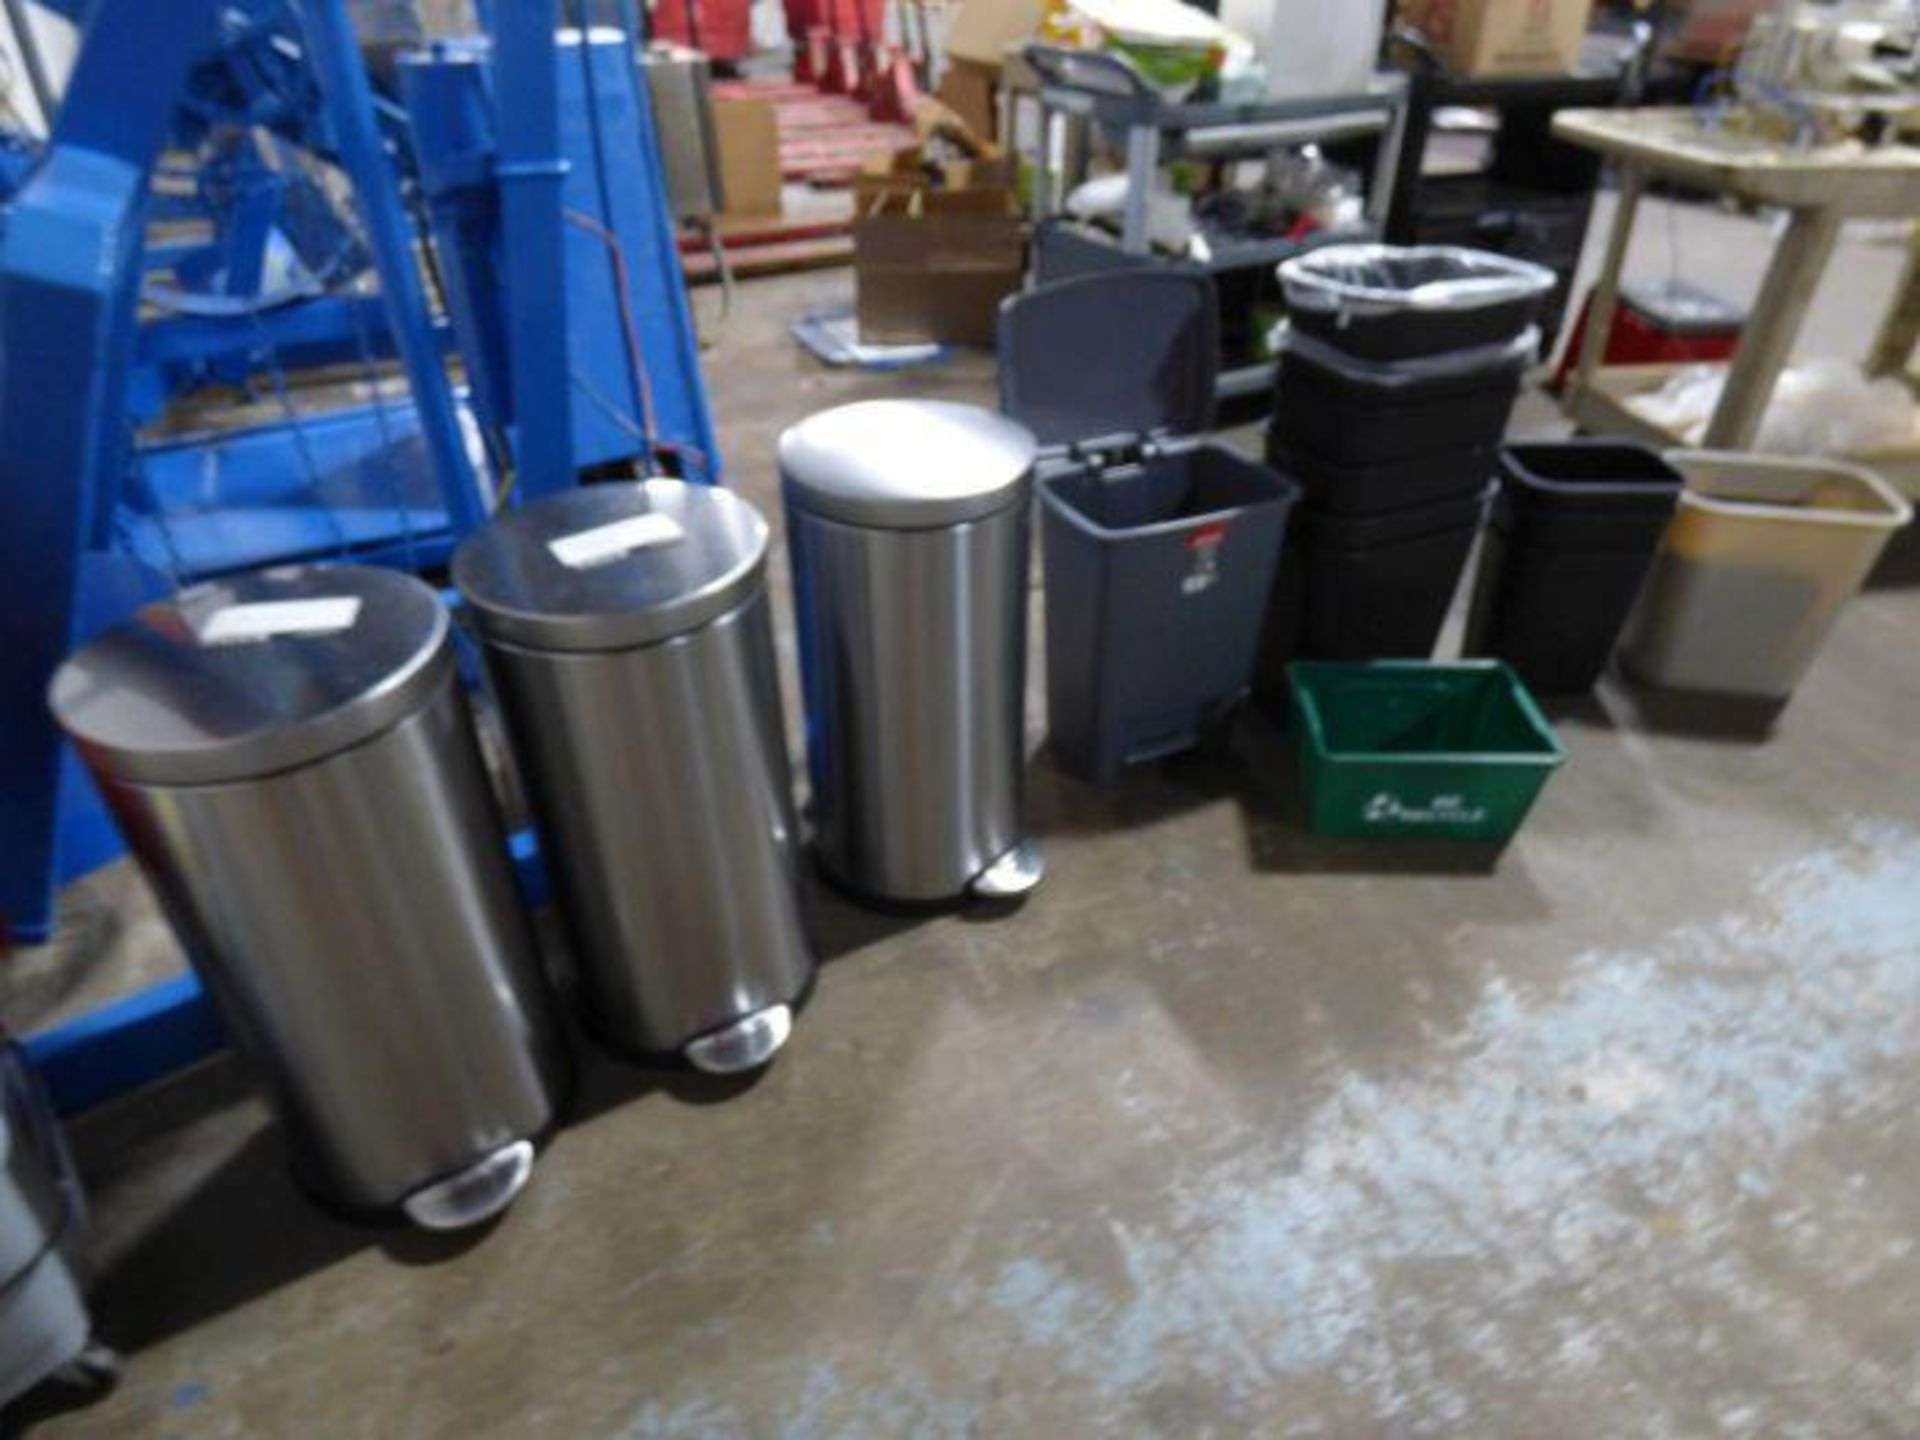 Lot 1355 - Lot of Trash Cans, Vacuums